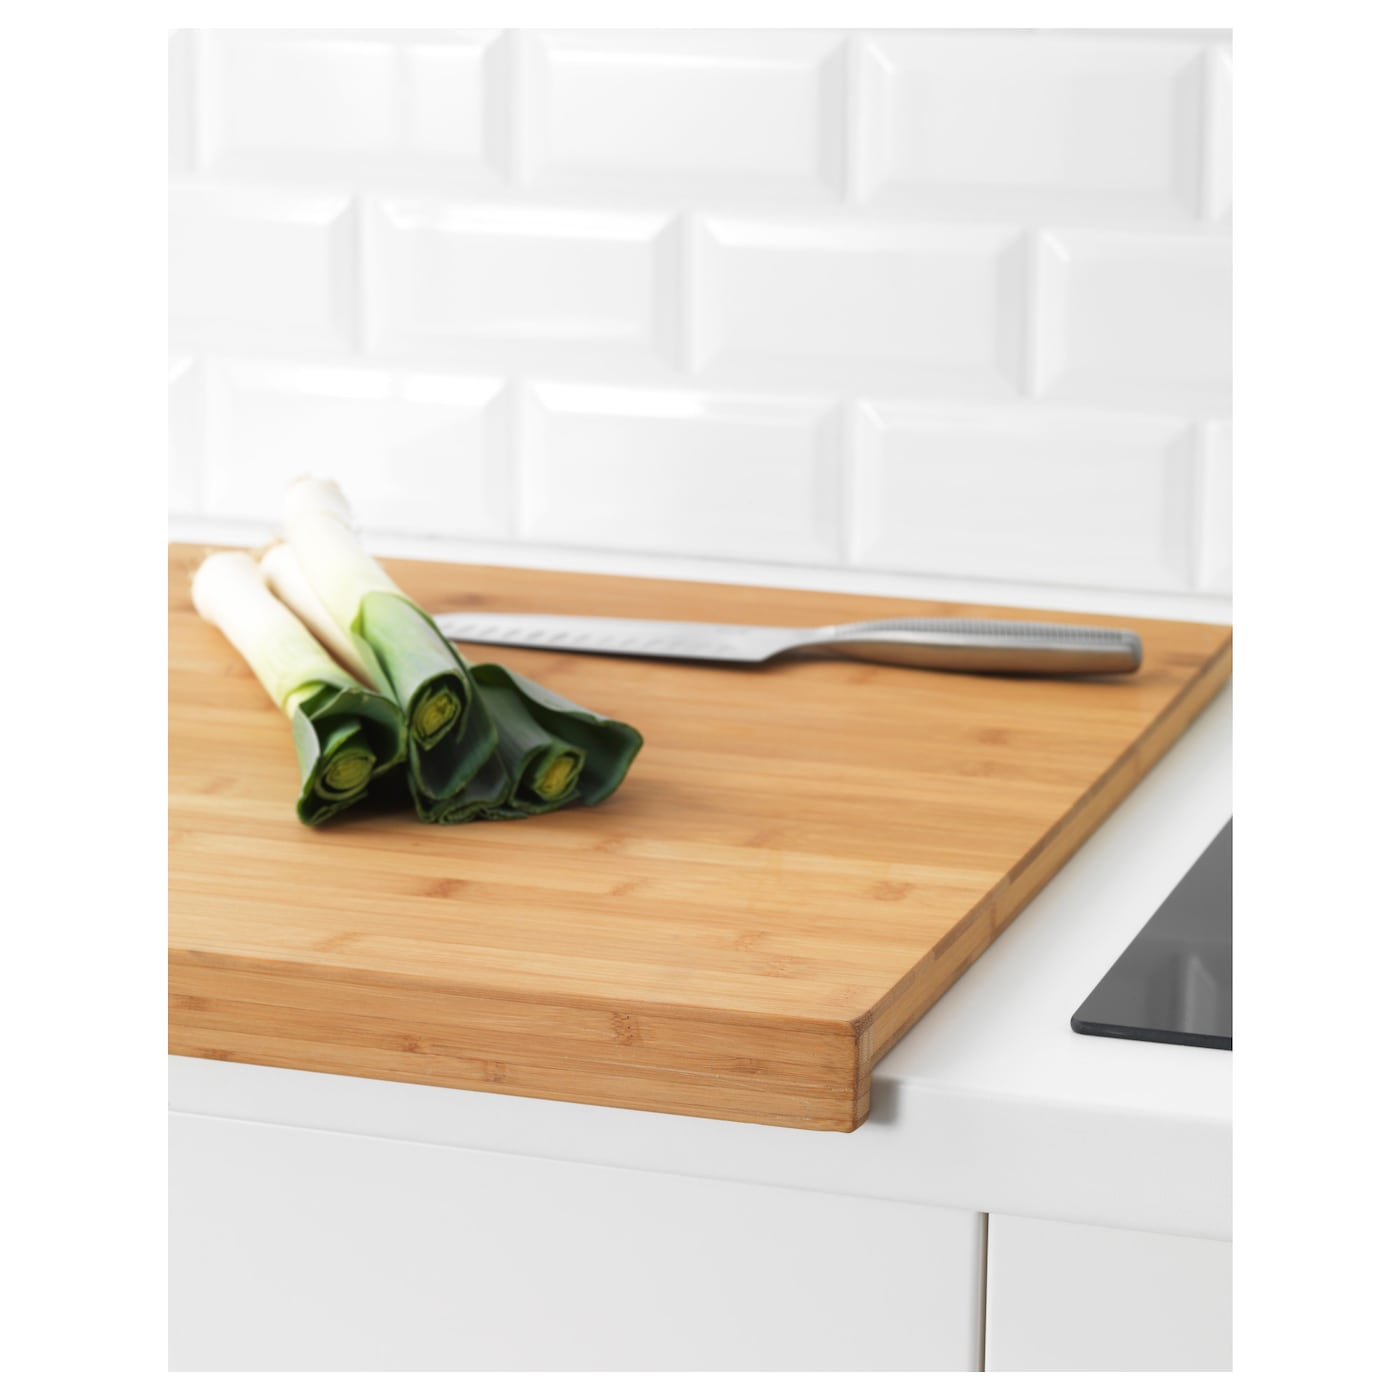 ... L?MPLIG chopping board The weight provides a stable base for cutting